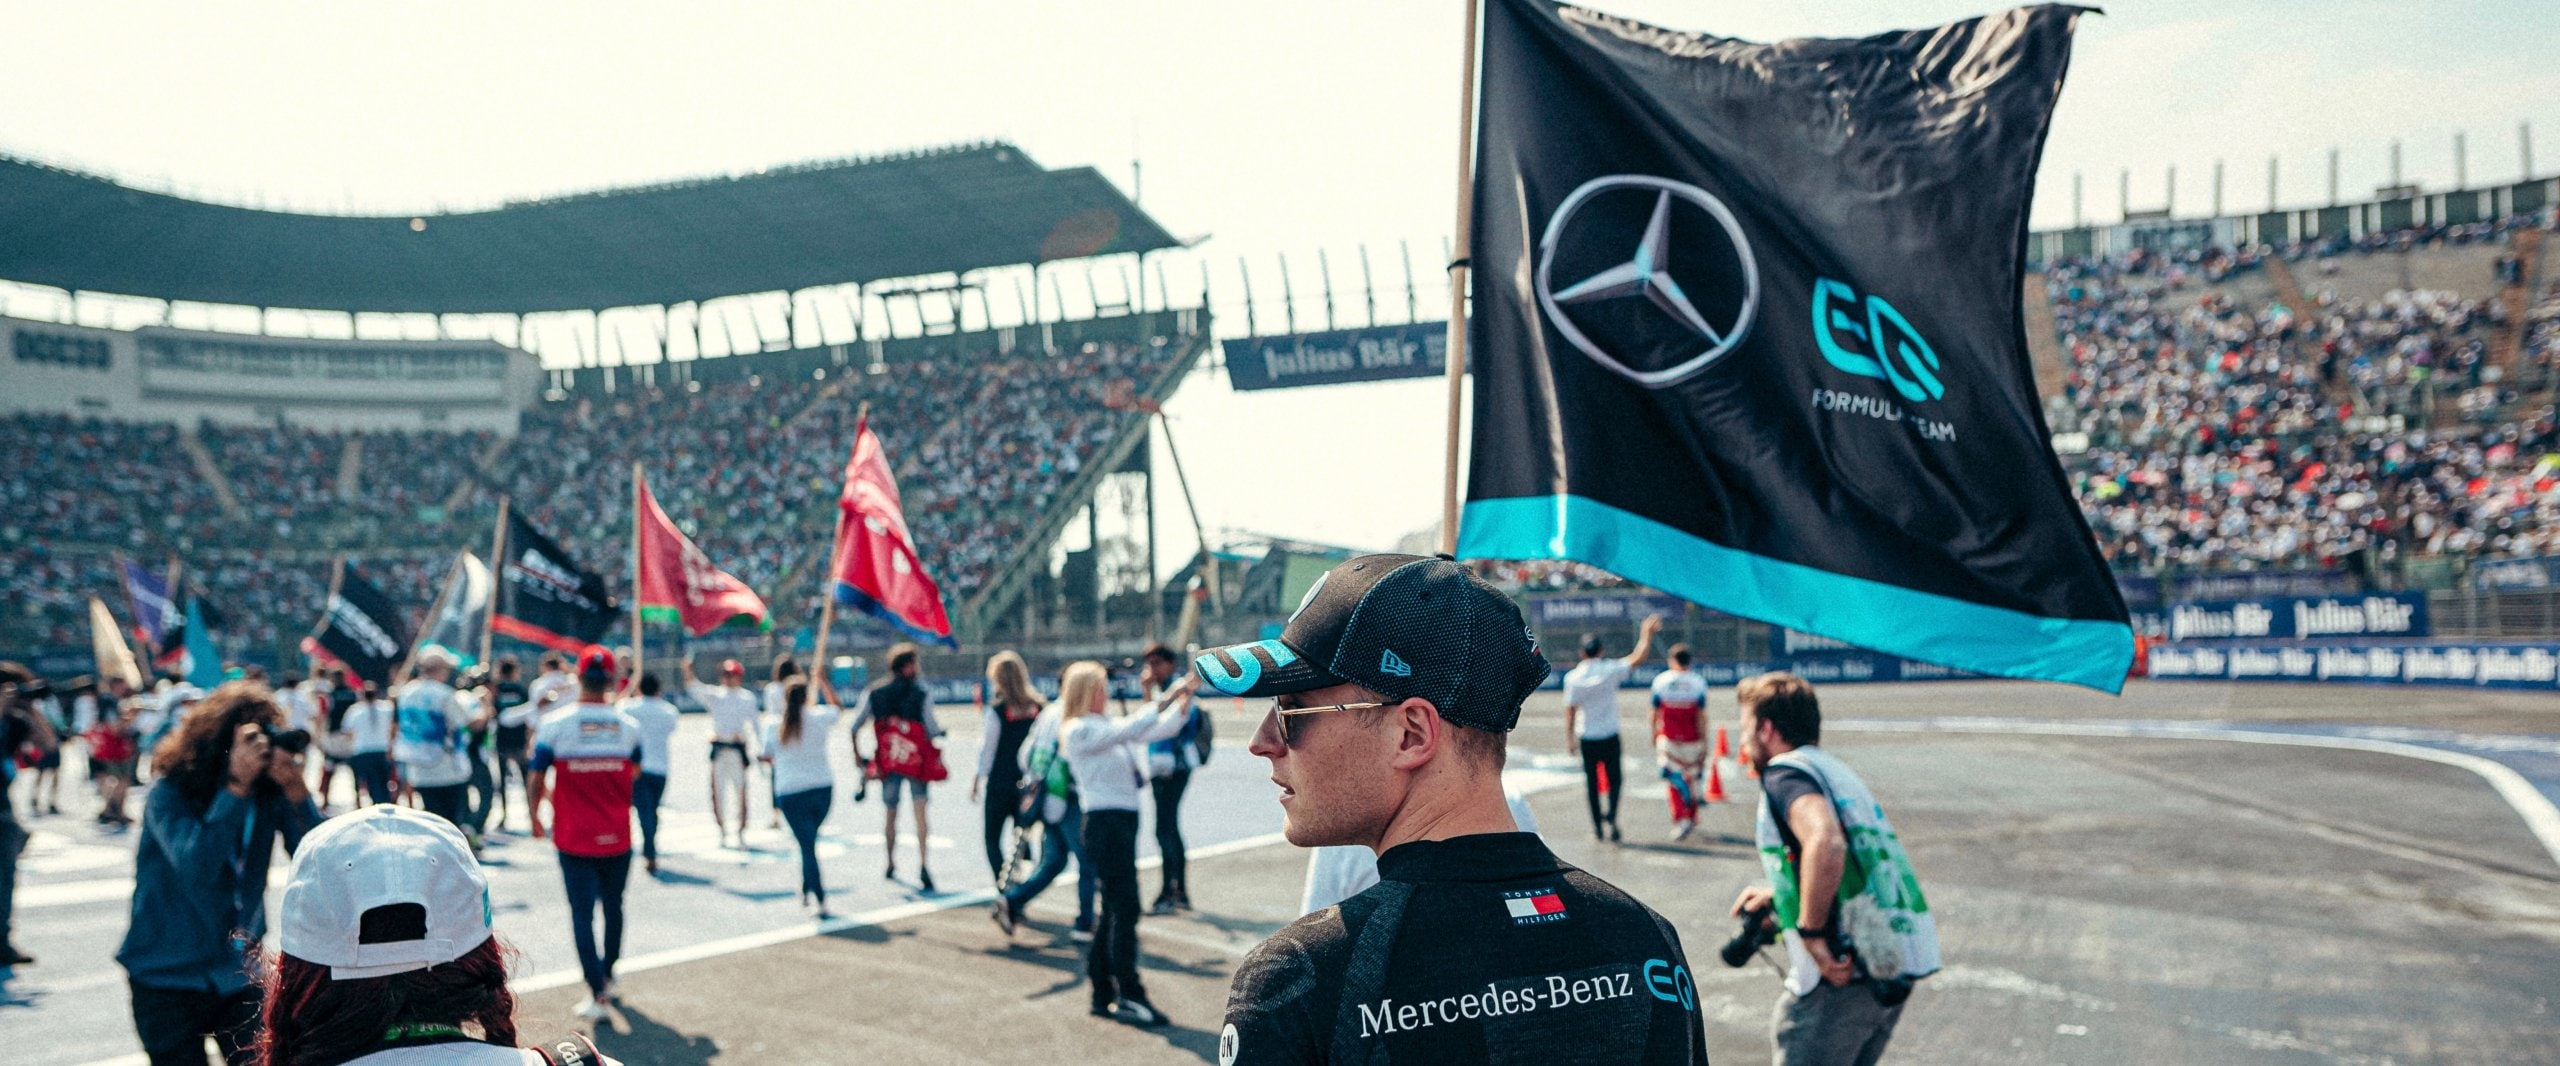 Racetrack in Mexico City with a Mercedes Flag